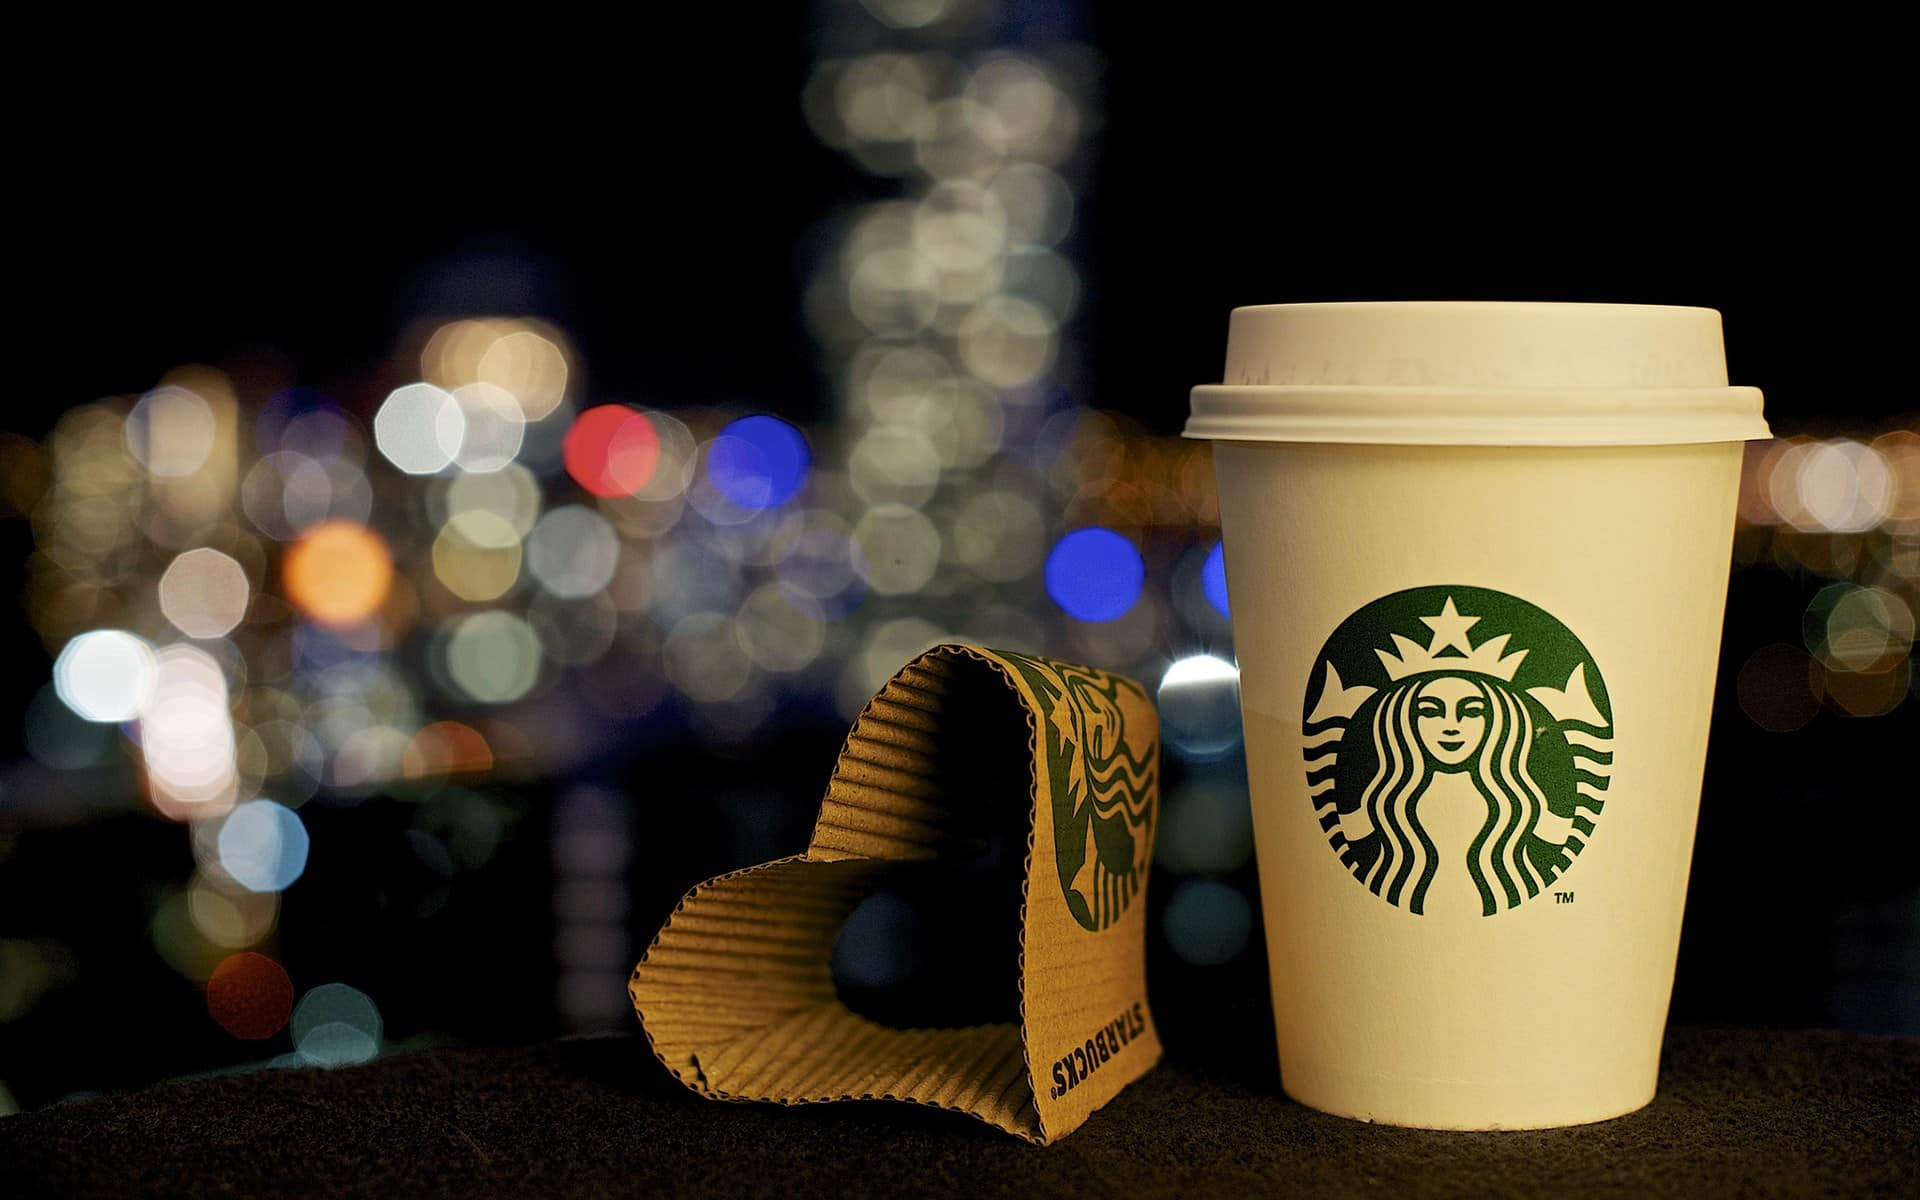 Starbucks vs. Peets Coffee